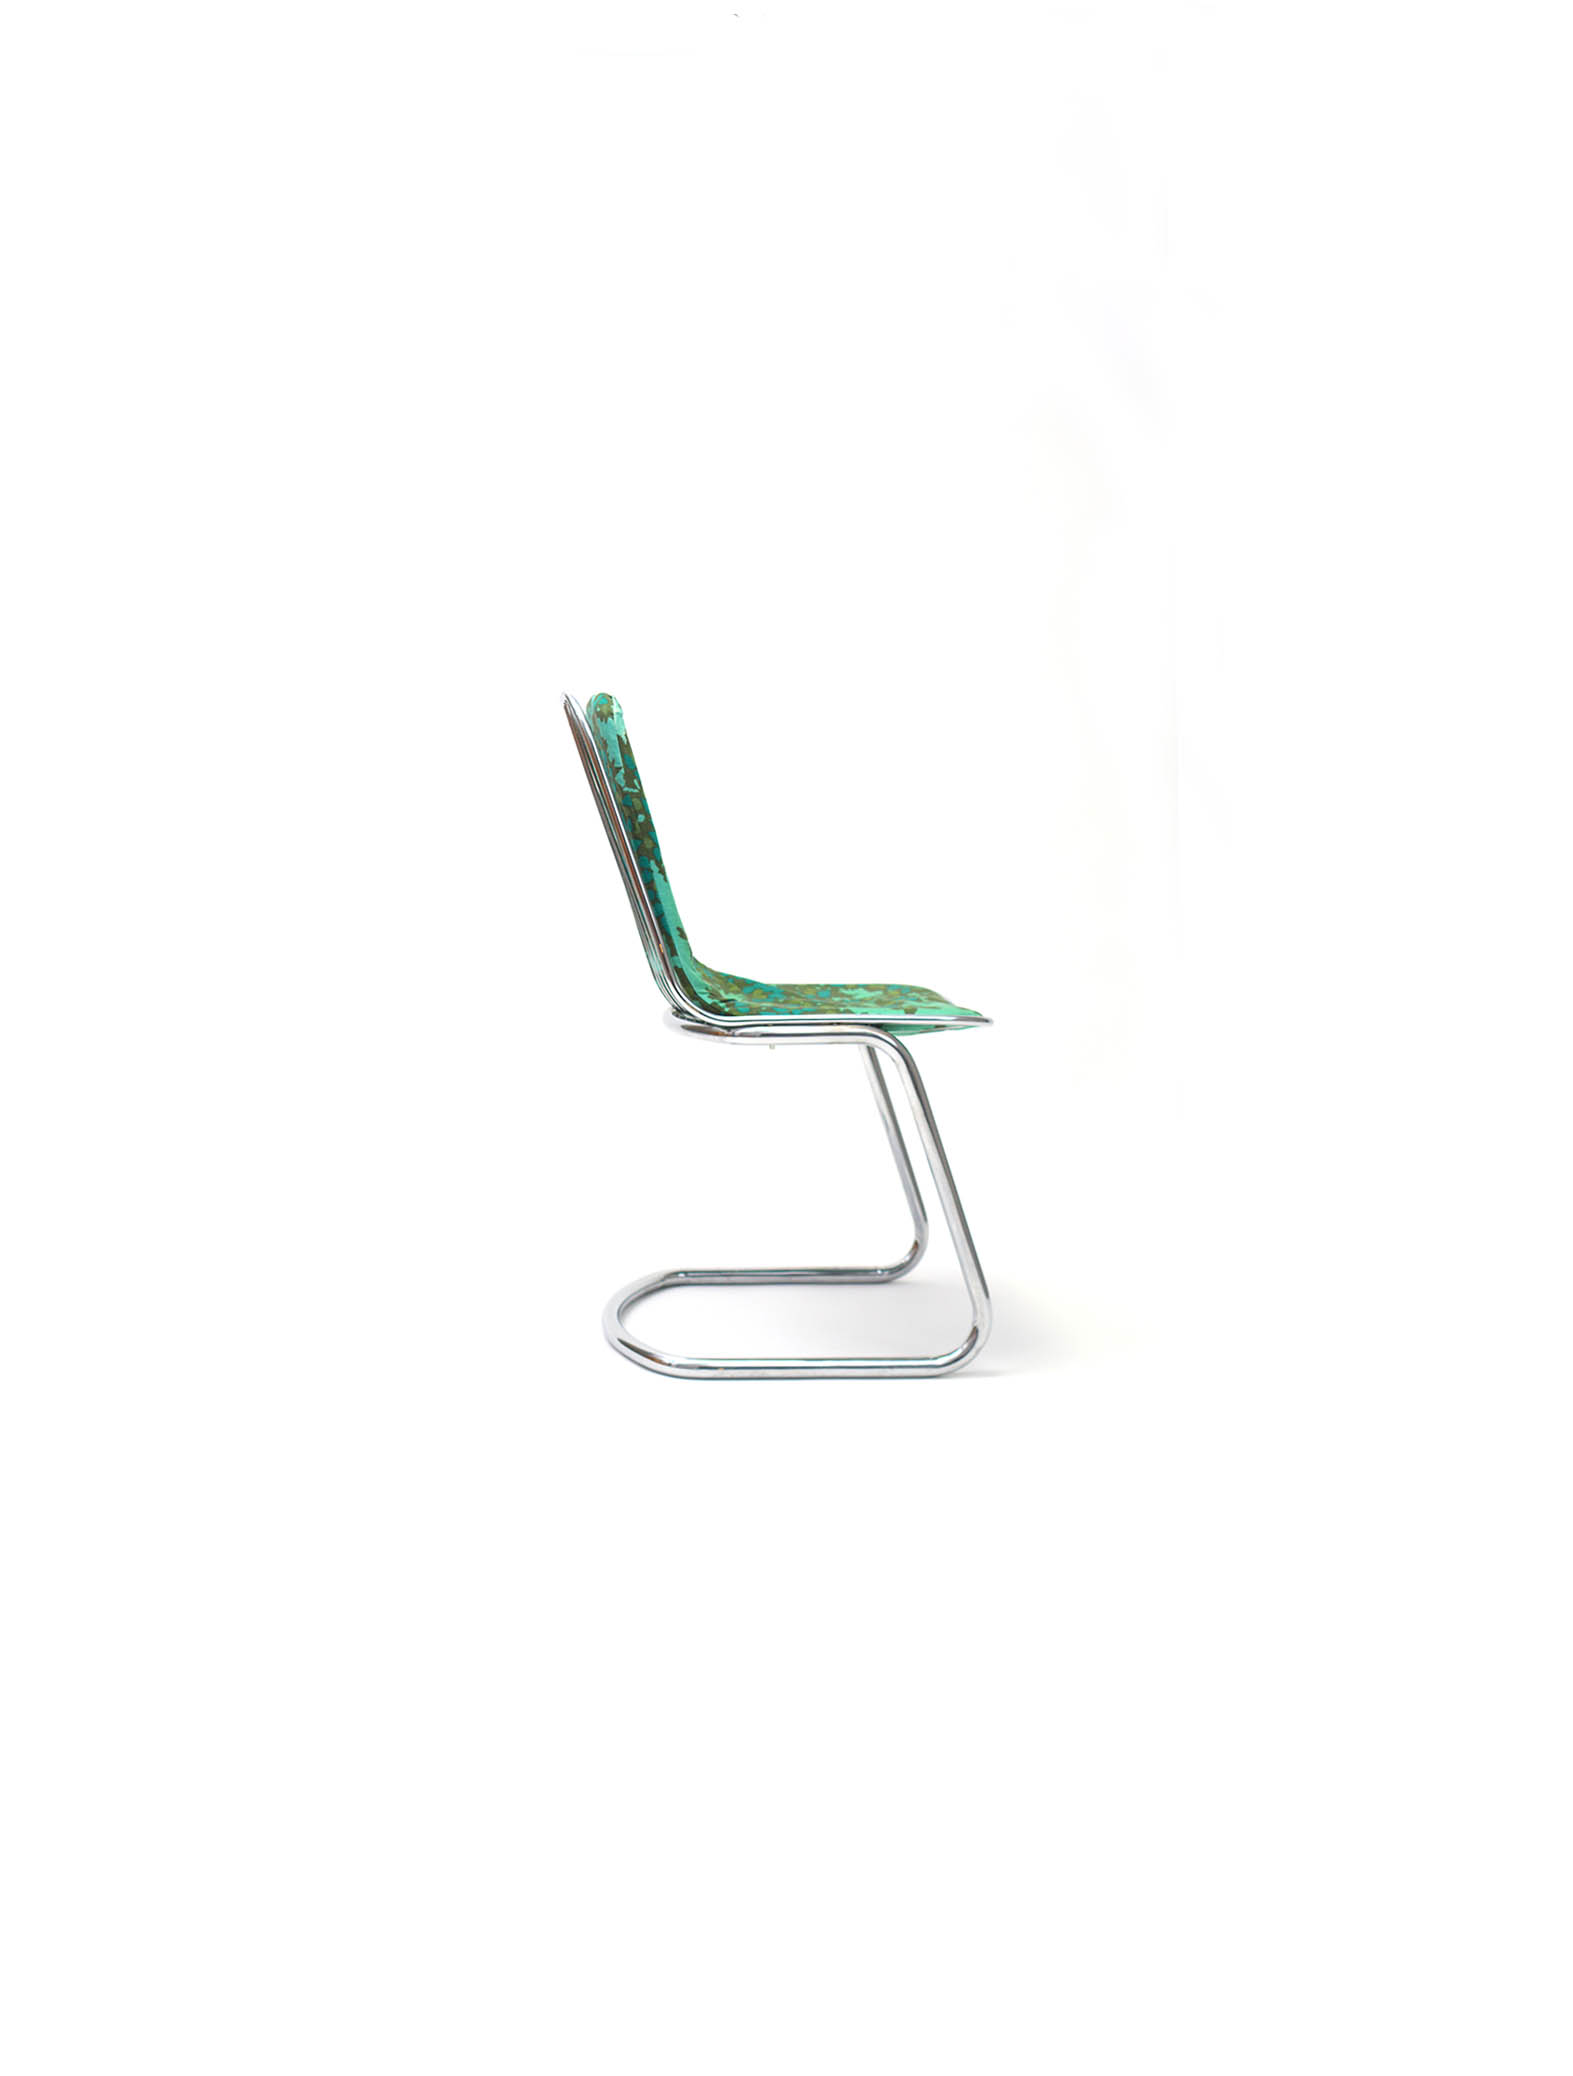 CHAIR BY ELIOS COLLE D'ELSA